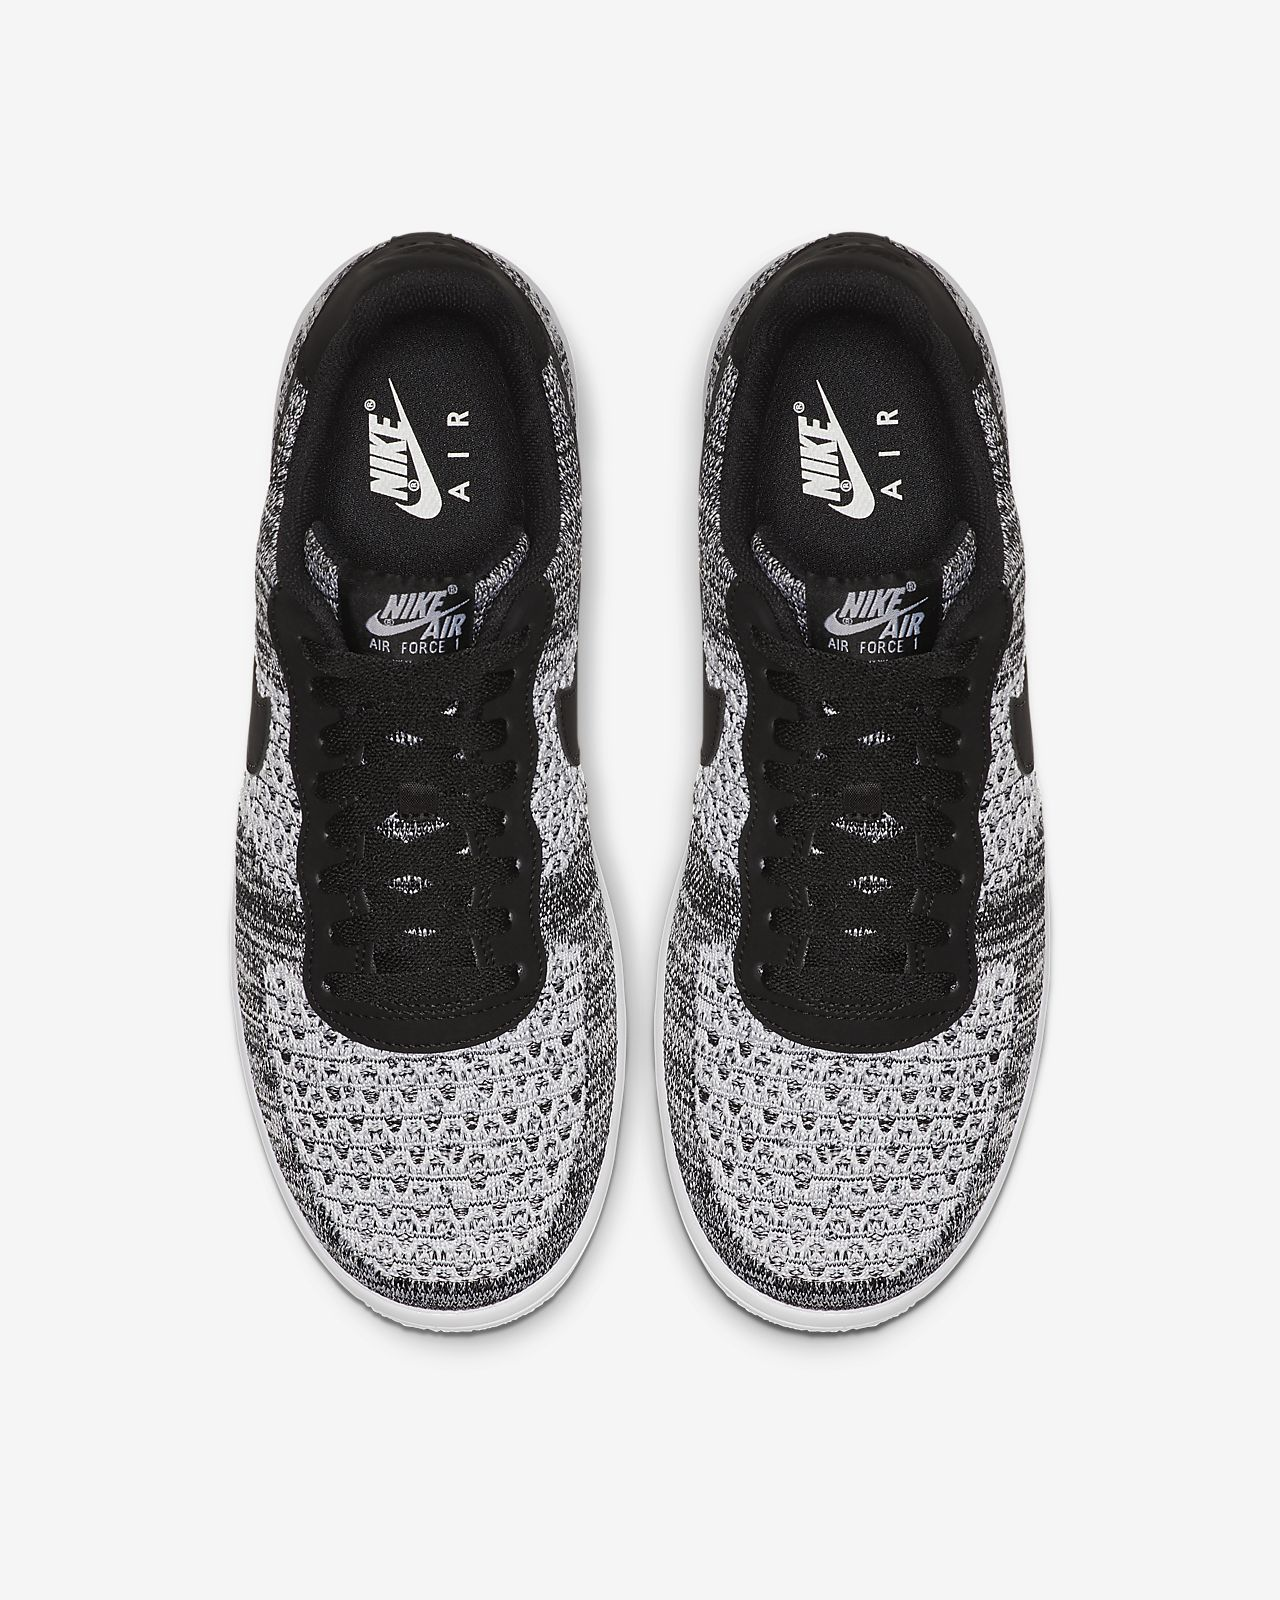 release date 2236d 8830f ... Chaussure Nike Air Force 1 Flyknit 2.0 pour Homme